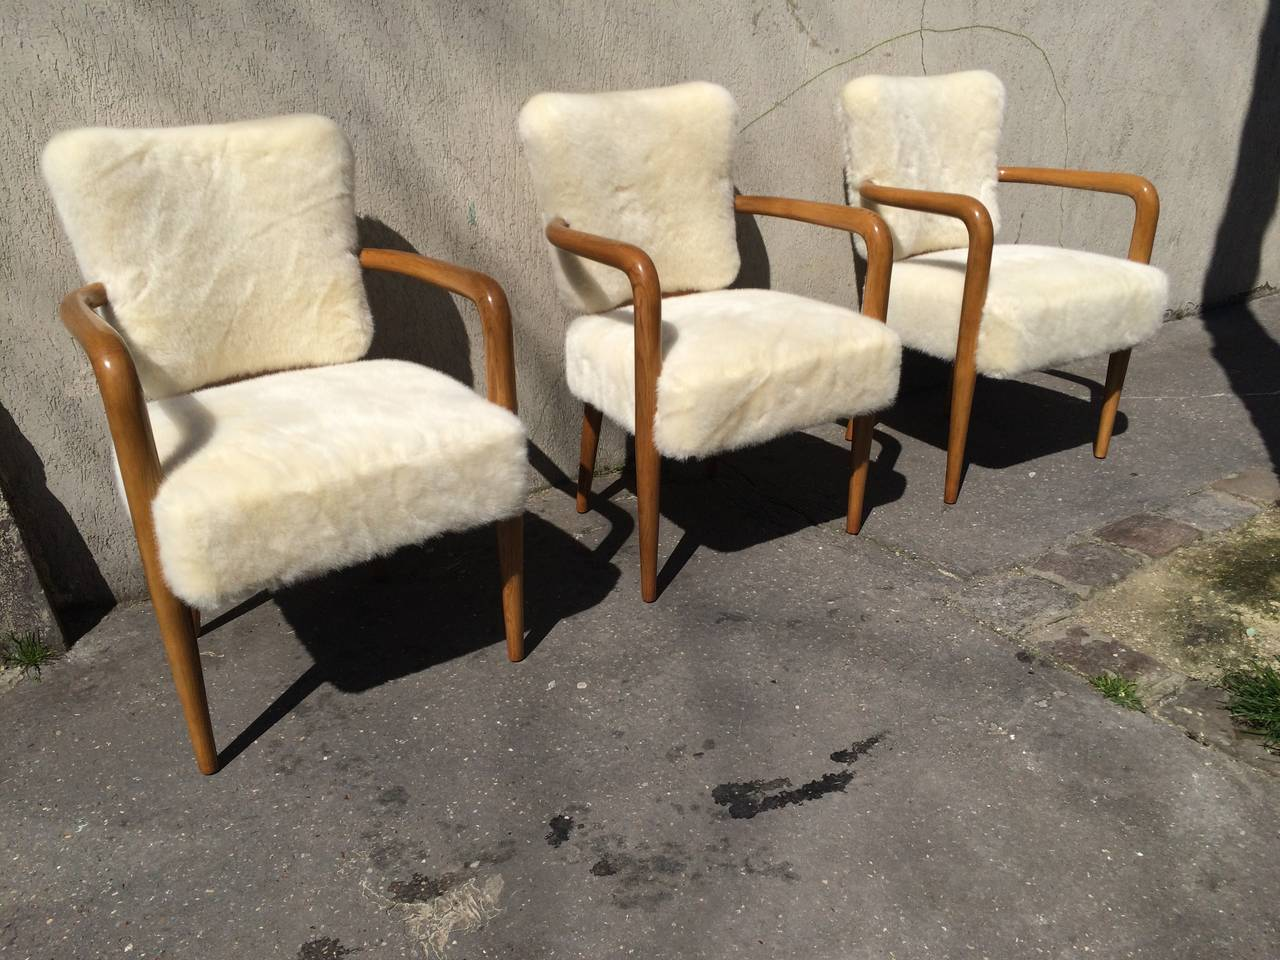 Renou Et Genissetrare Set Of Three Desk Chairs Newly